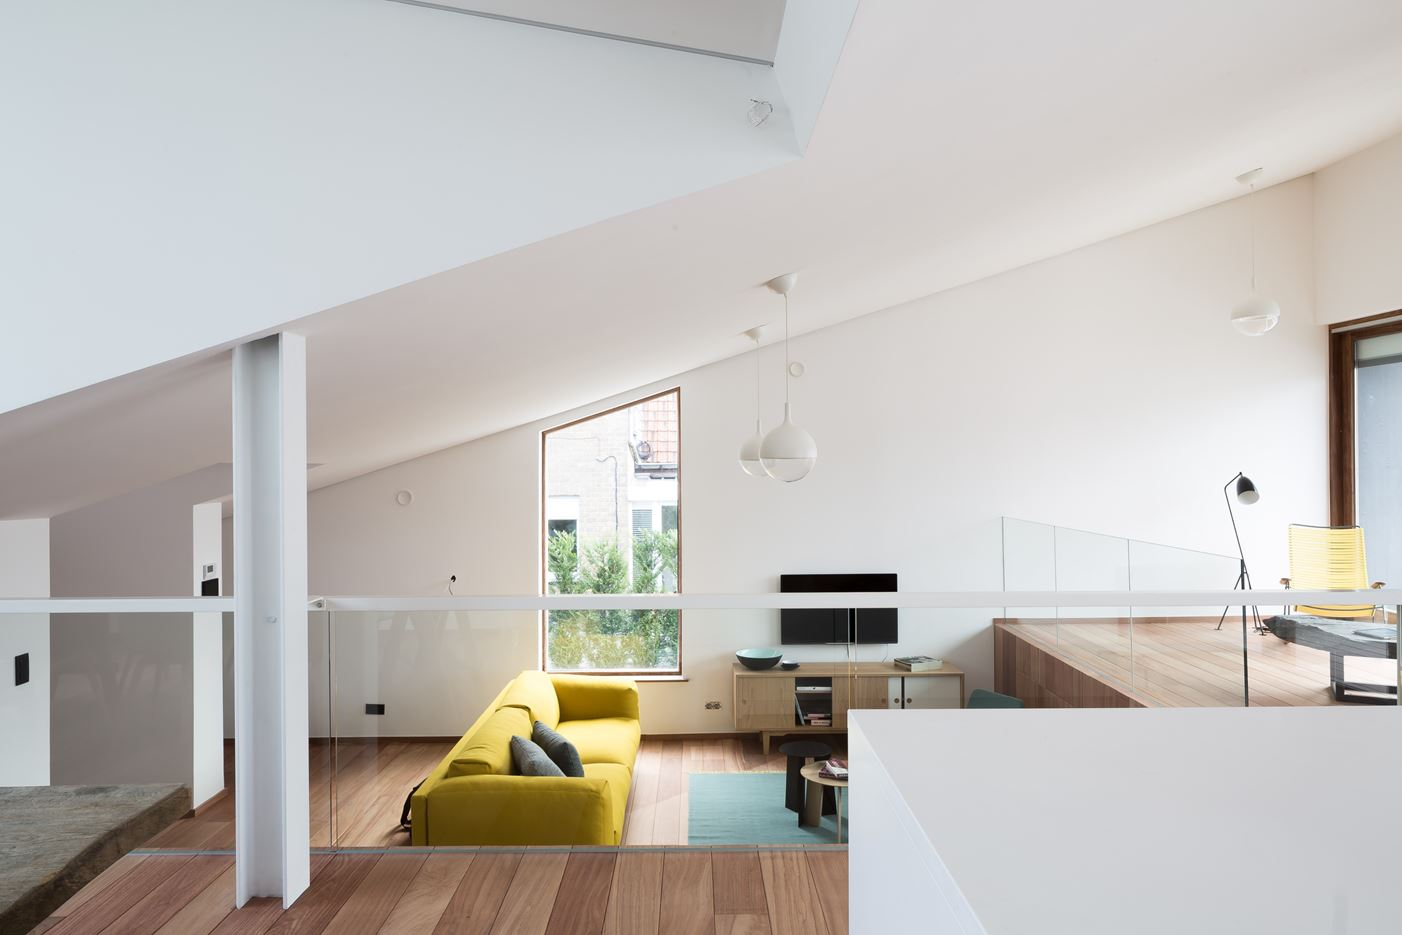 House PIBO in Gent, Belgium by OYO